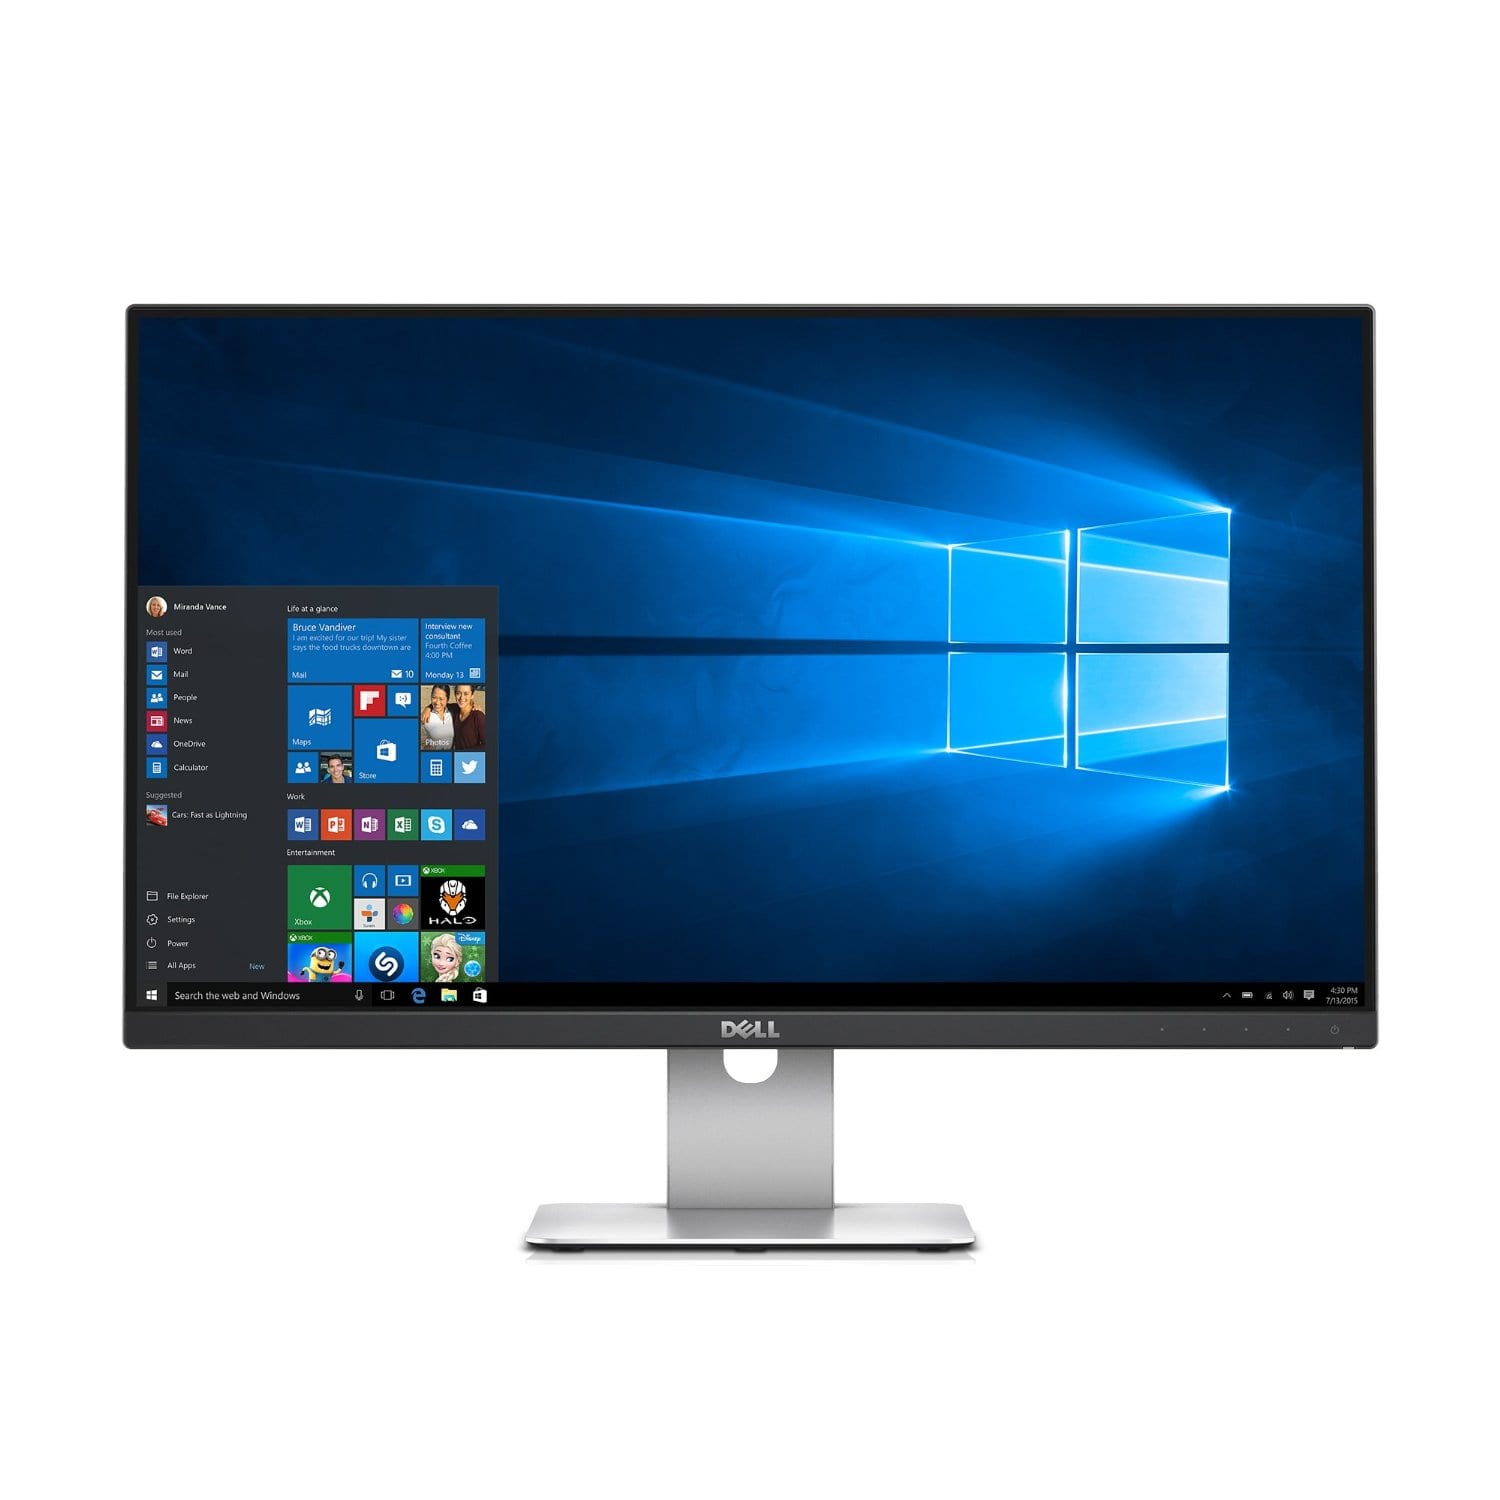 Dell S2415H LED IPS HD monitor + $100.00 egift card for $188.09 after instant and other coupons. Free Shipping.